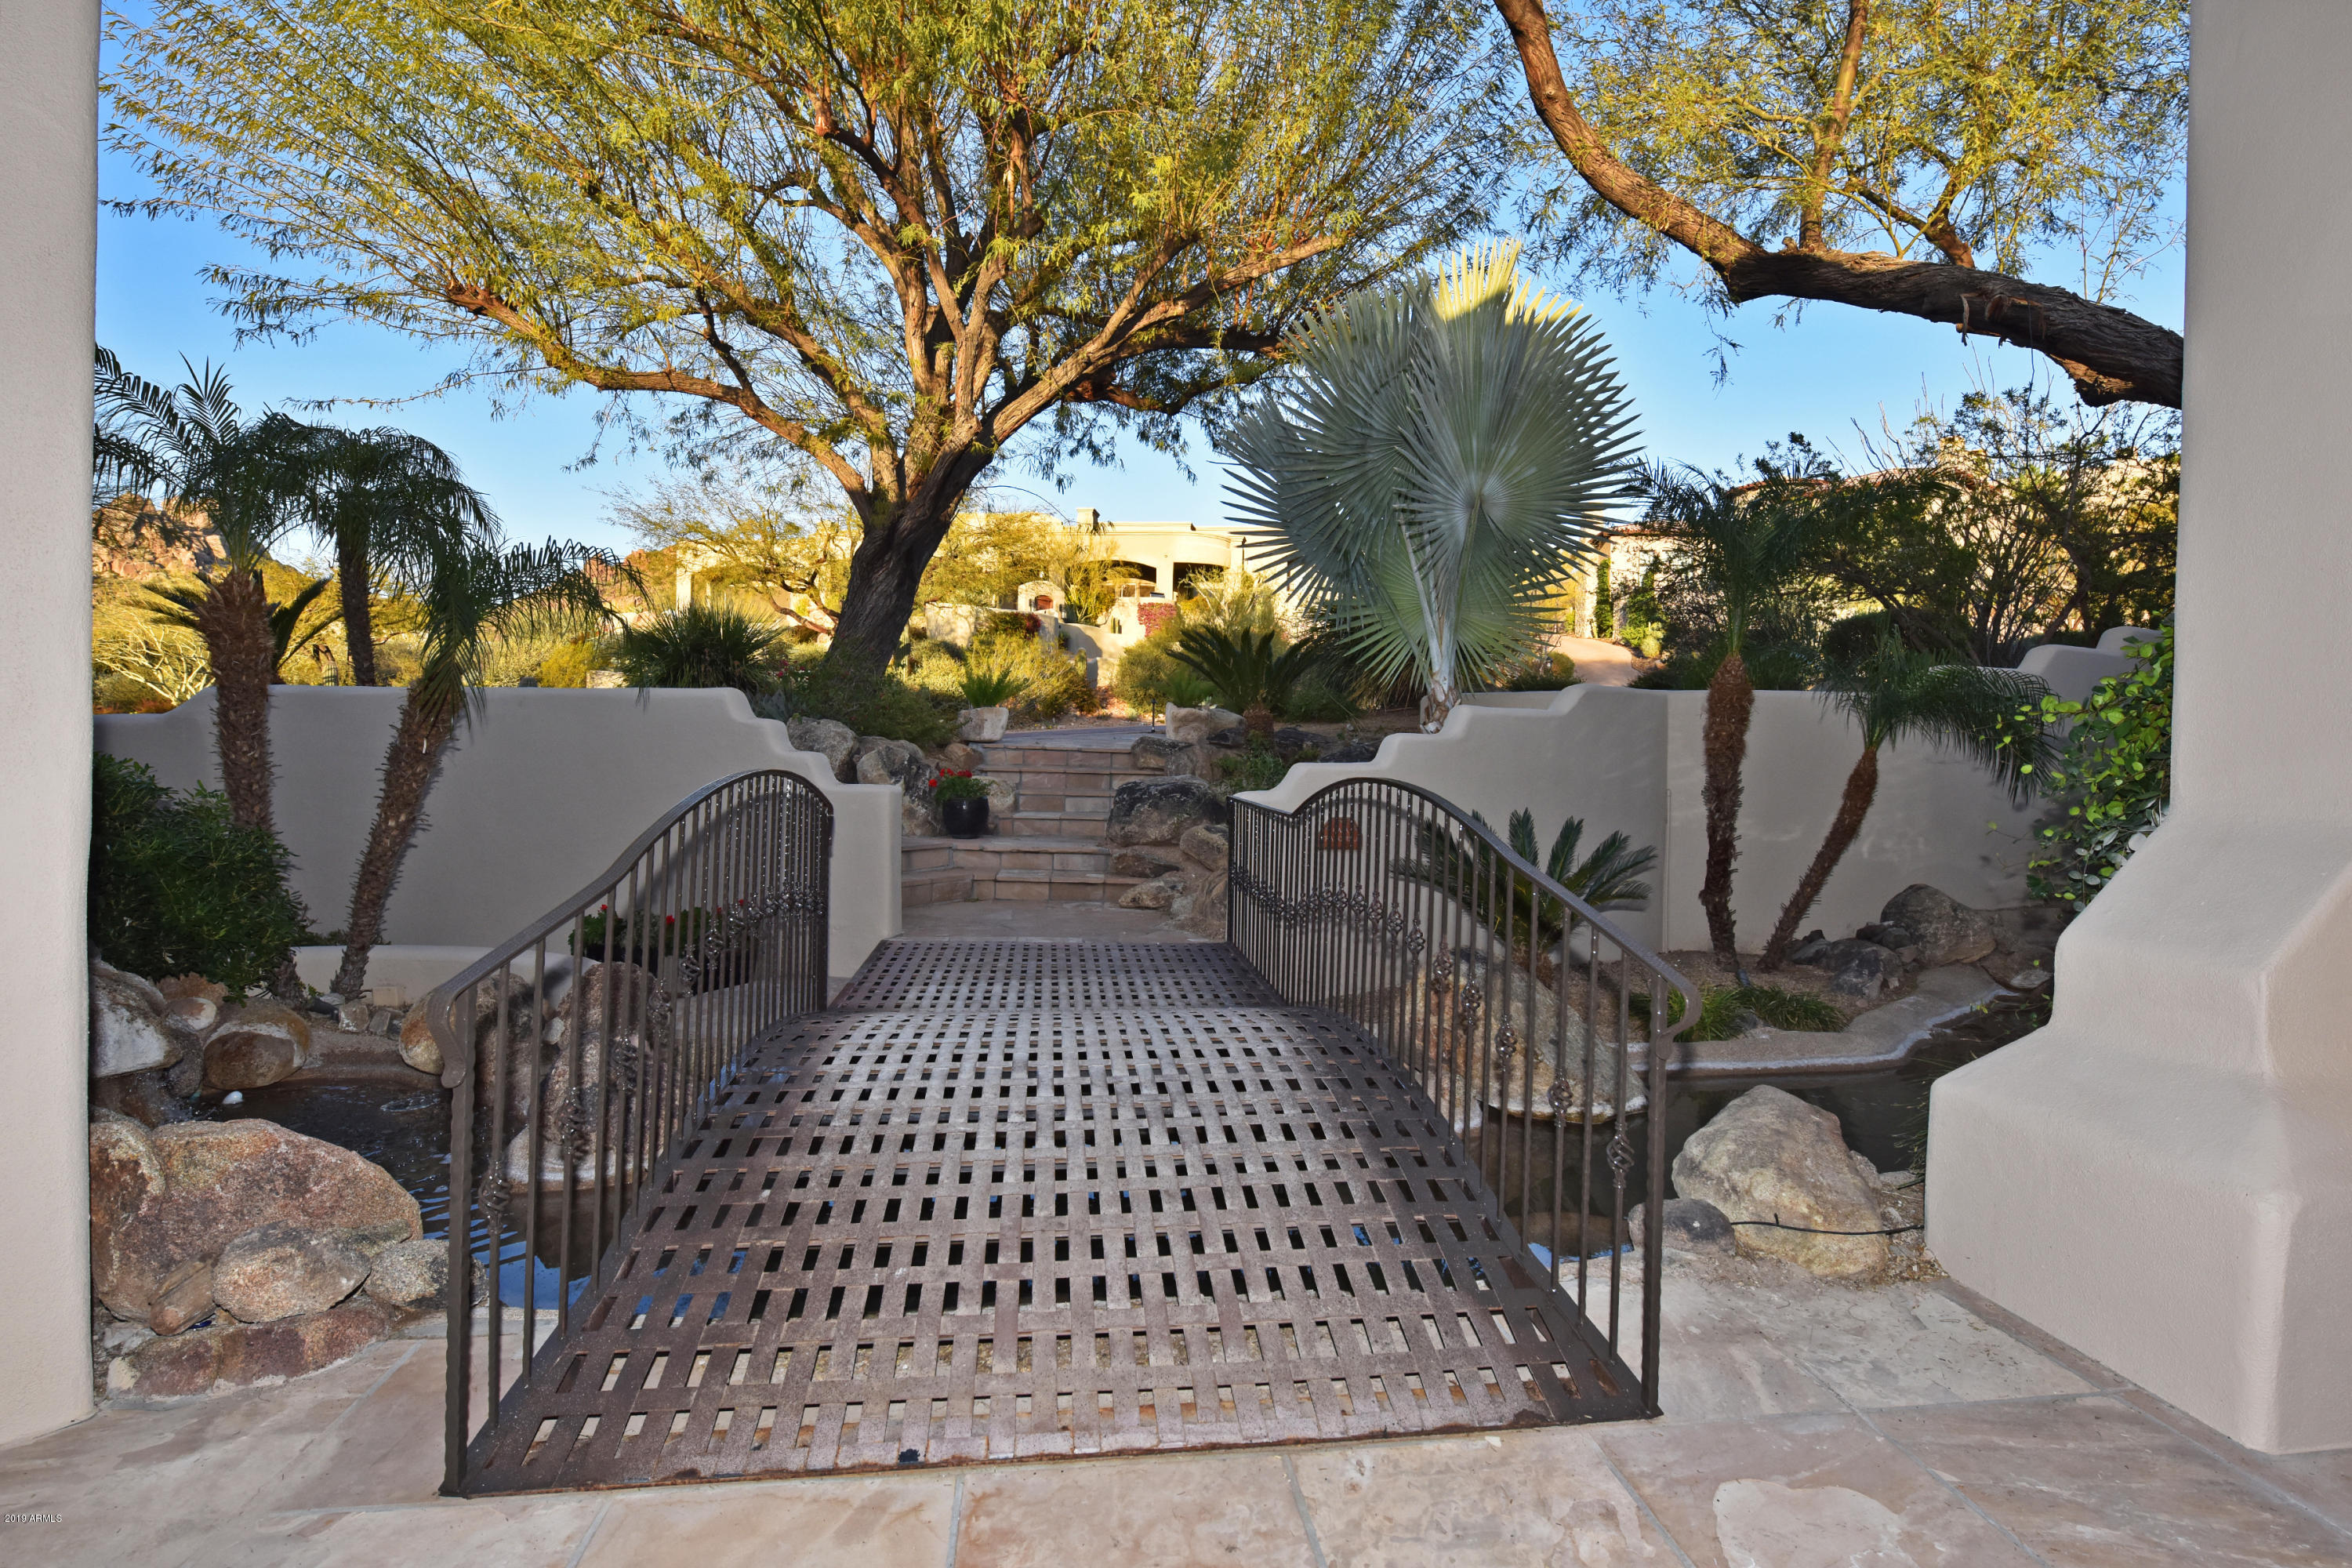 MLS 5883292 10801 E HAPPY VALLEY Road Unit 122 Building 122, Scottsdale, AZ 85255 Scottsdale AZ Troon Village